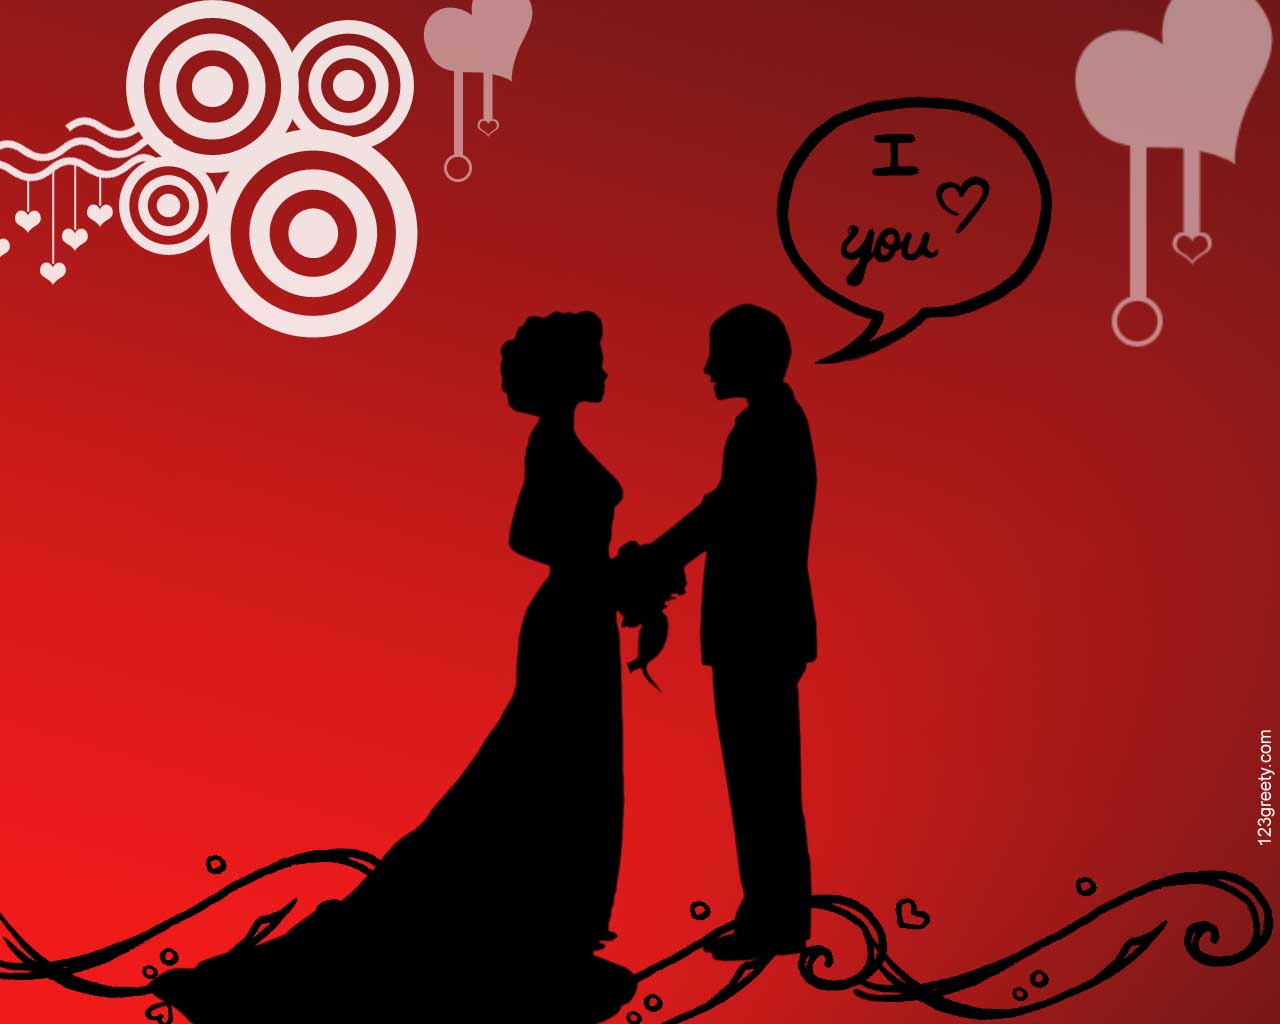 ��� ������ ����� ����� ���� ���� 2015 valentine's day card messages